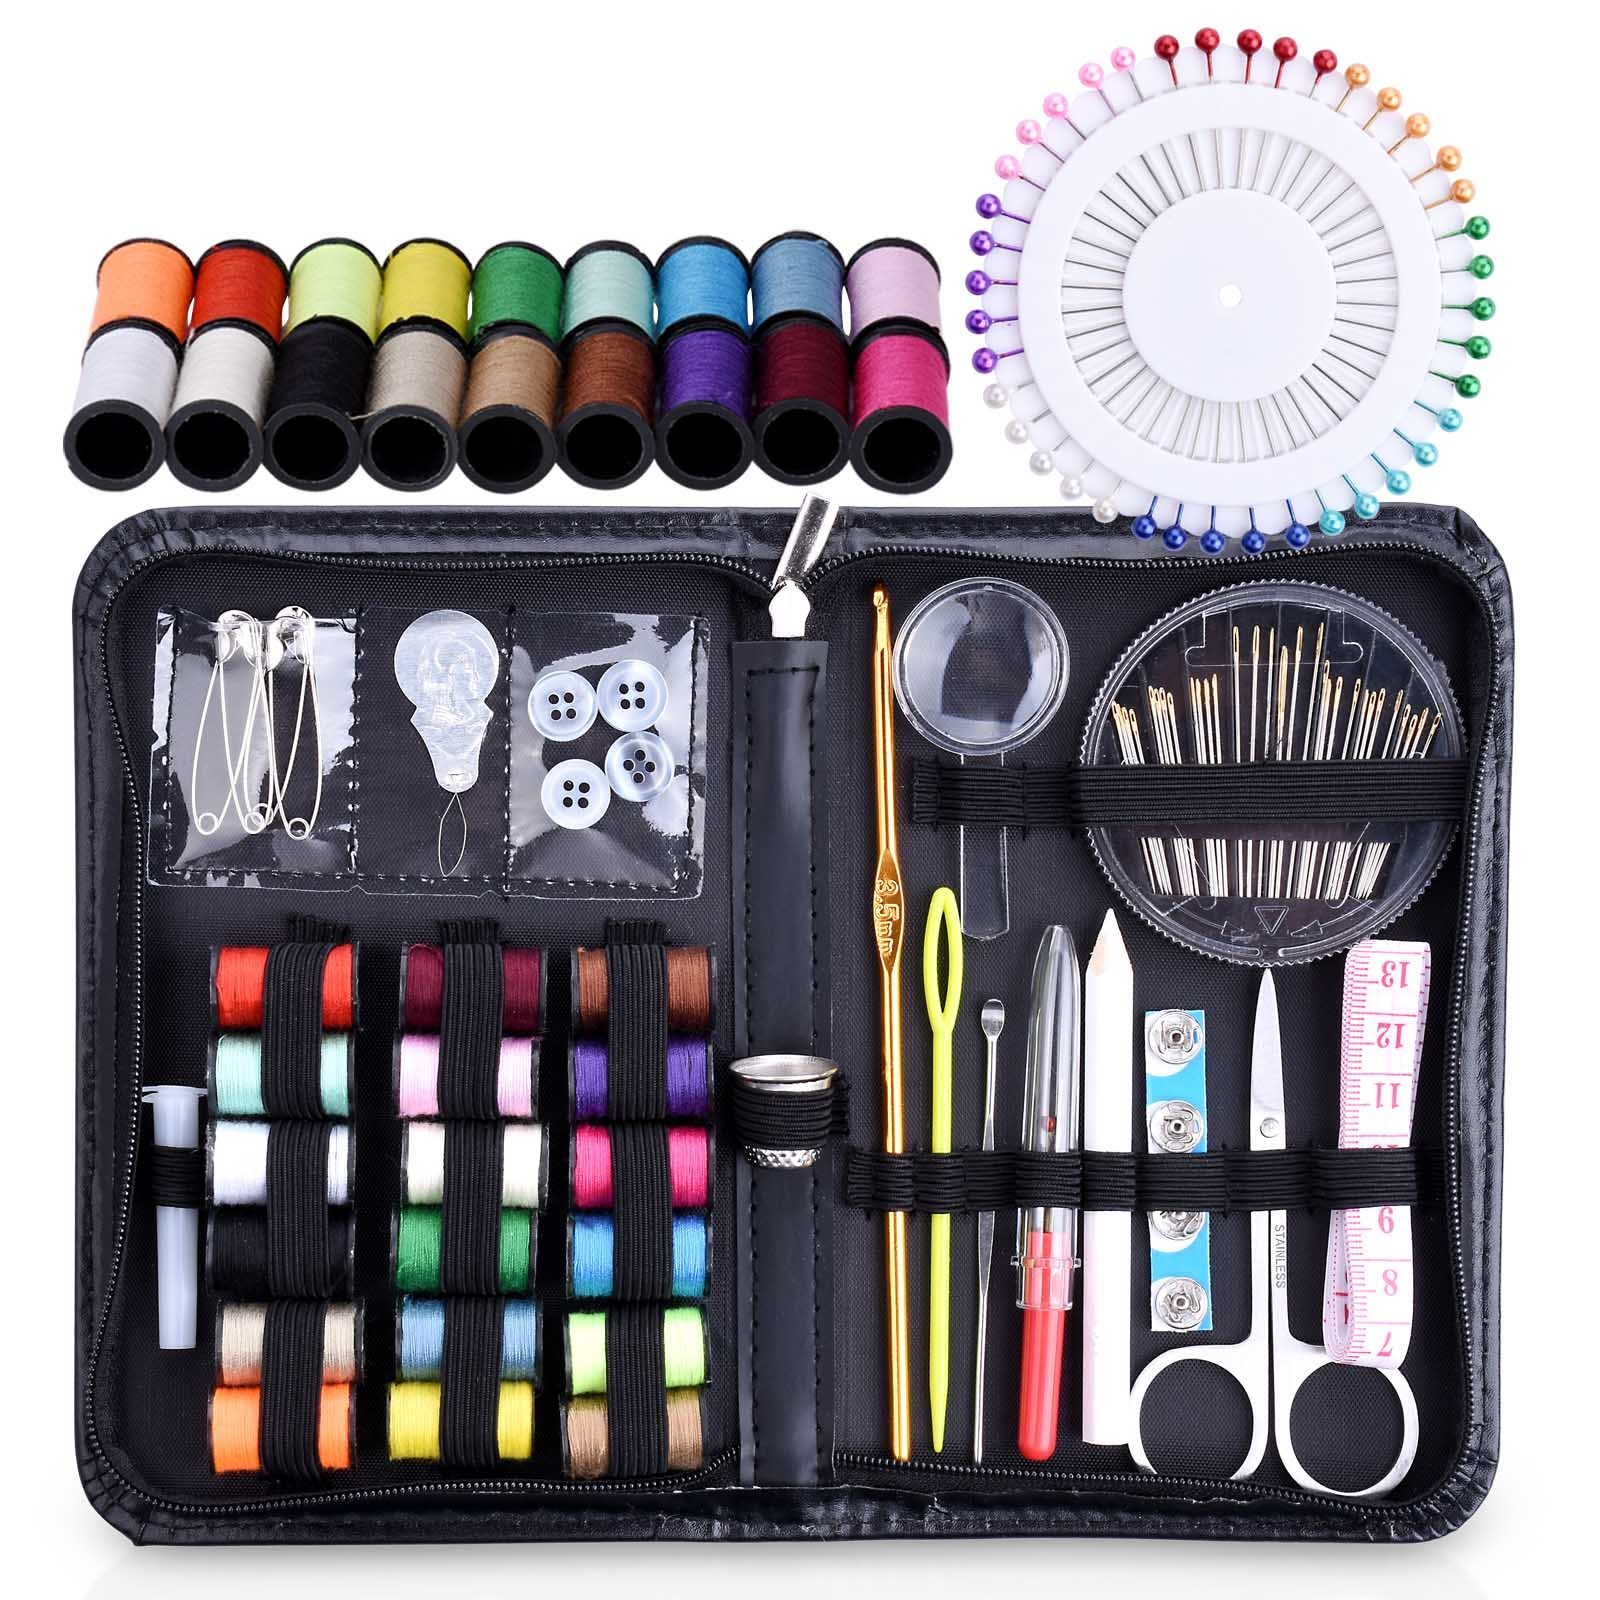 Tensun Travel Sewing Kit for Home, Office, Camping & Emergency, Sewing Supplies Accessories for Kids, Girls, Beginners & Adults - Filled with Quality Notions Thread, Scissors & Needles